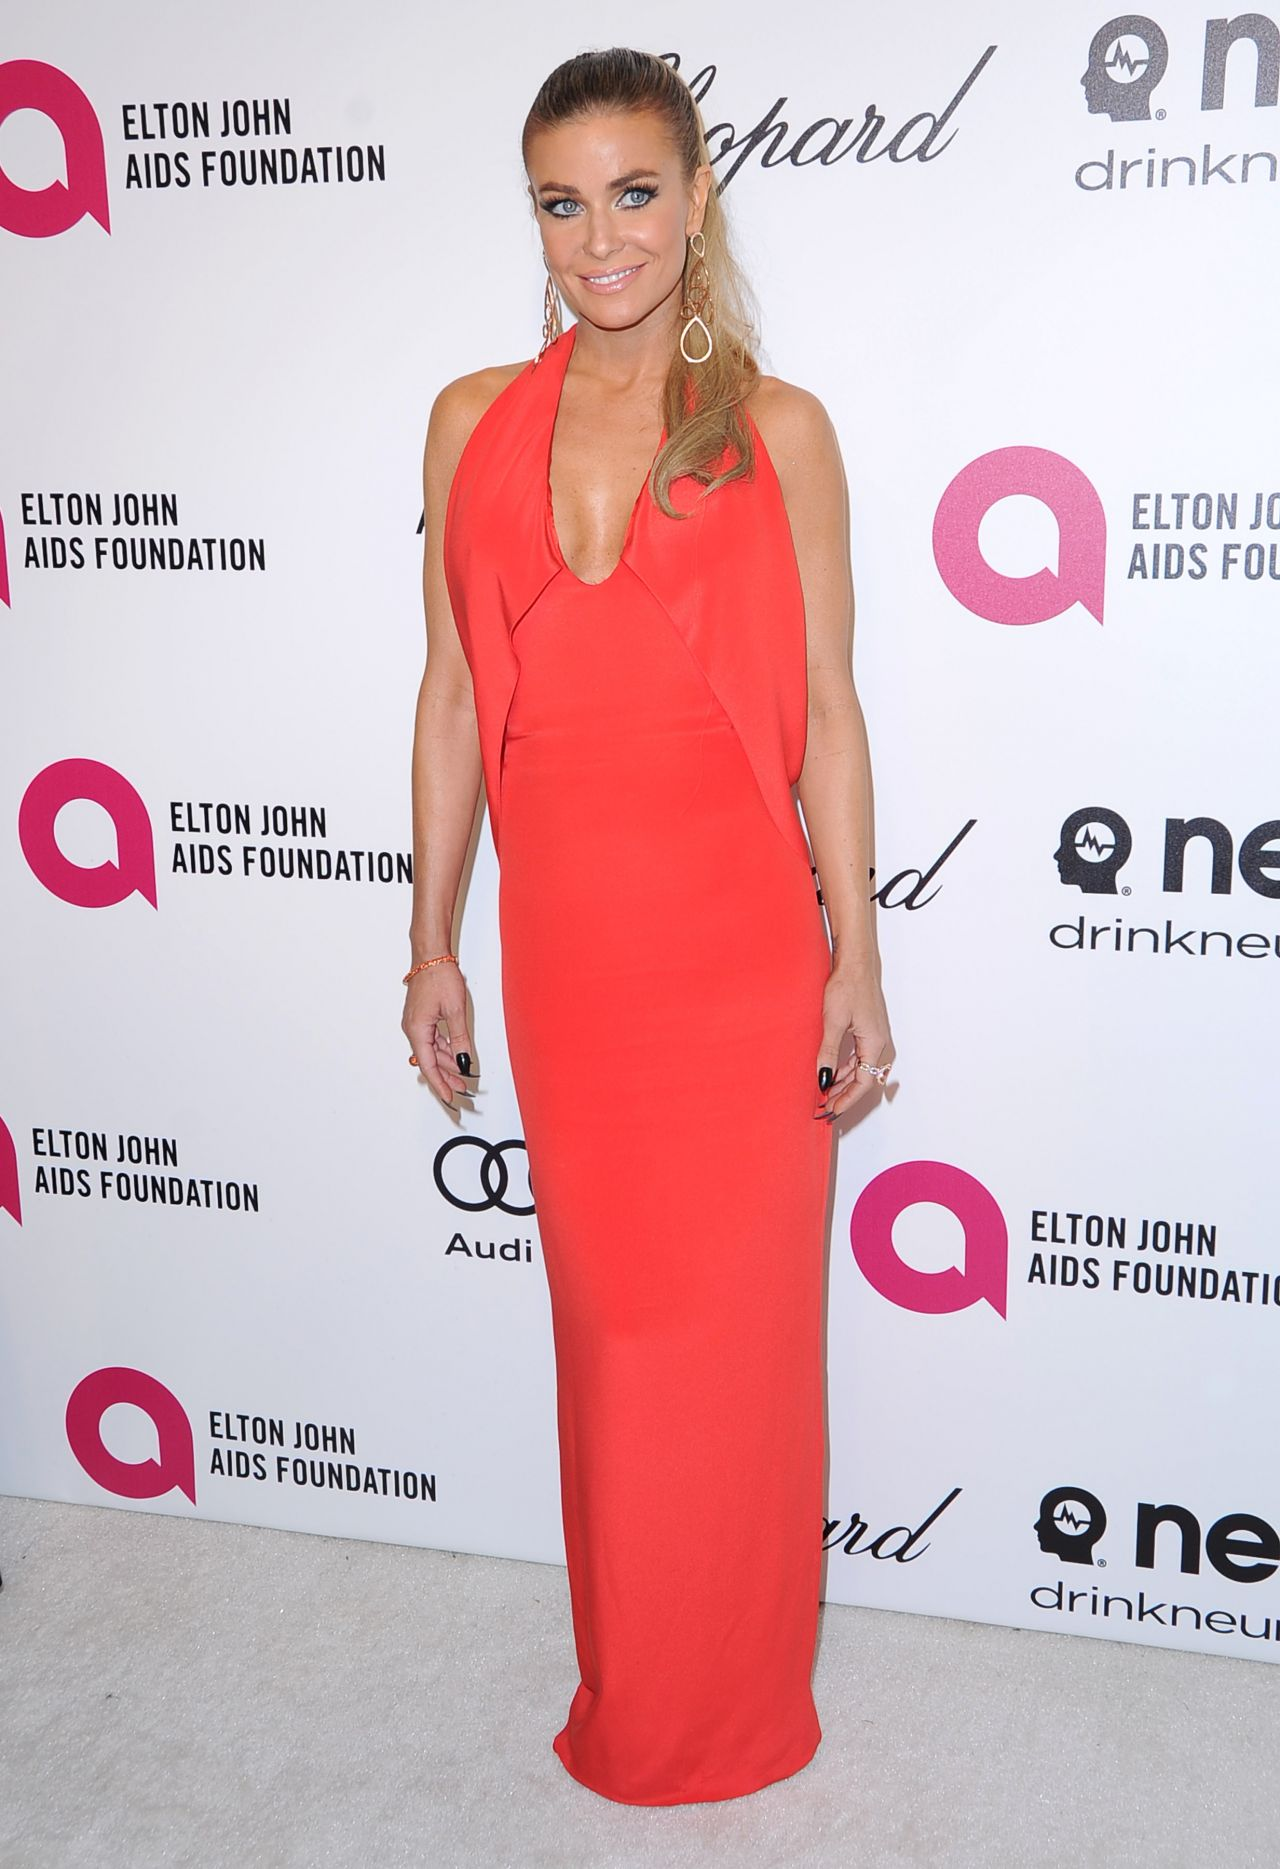 Carmen Electra - Elton John AIDS Foundation Academy Awards Viewing Party, March 2014